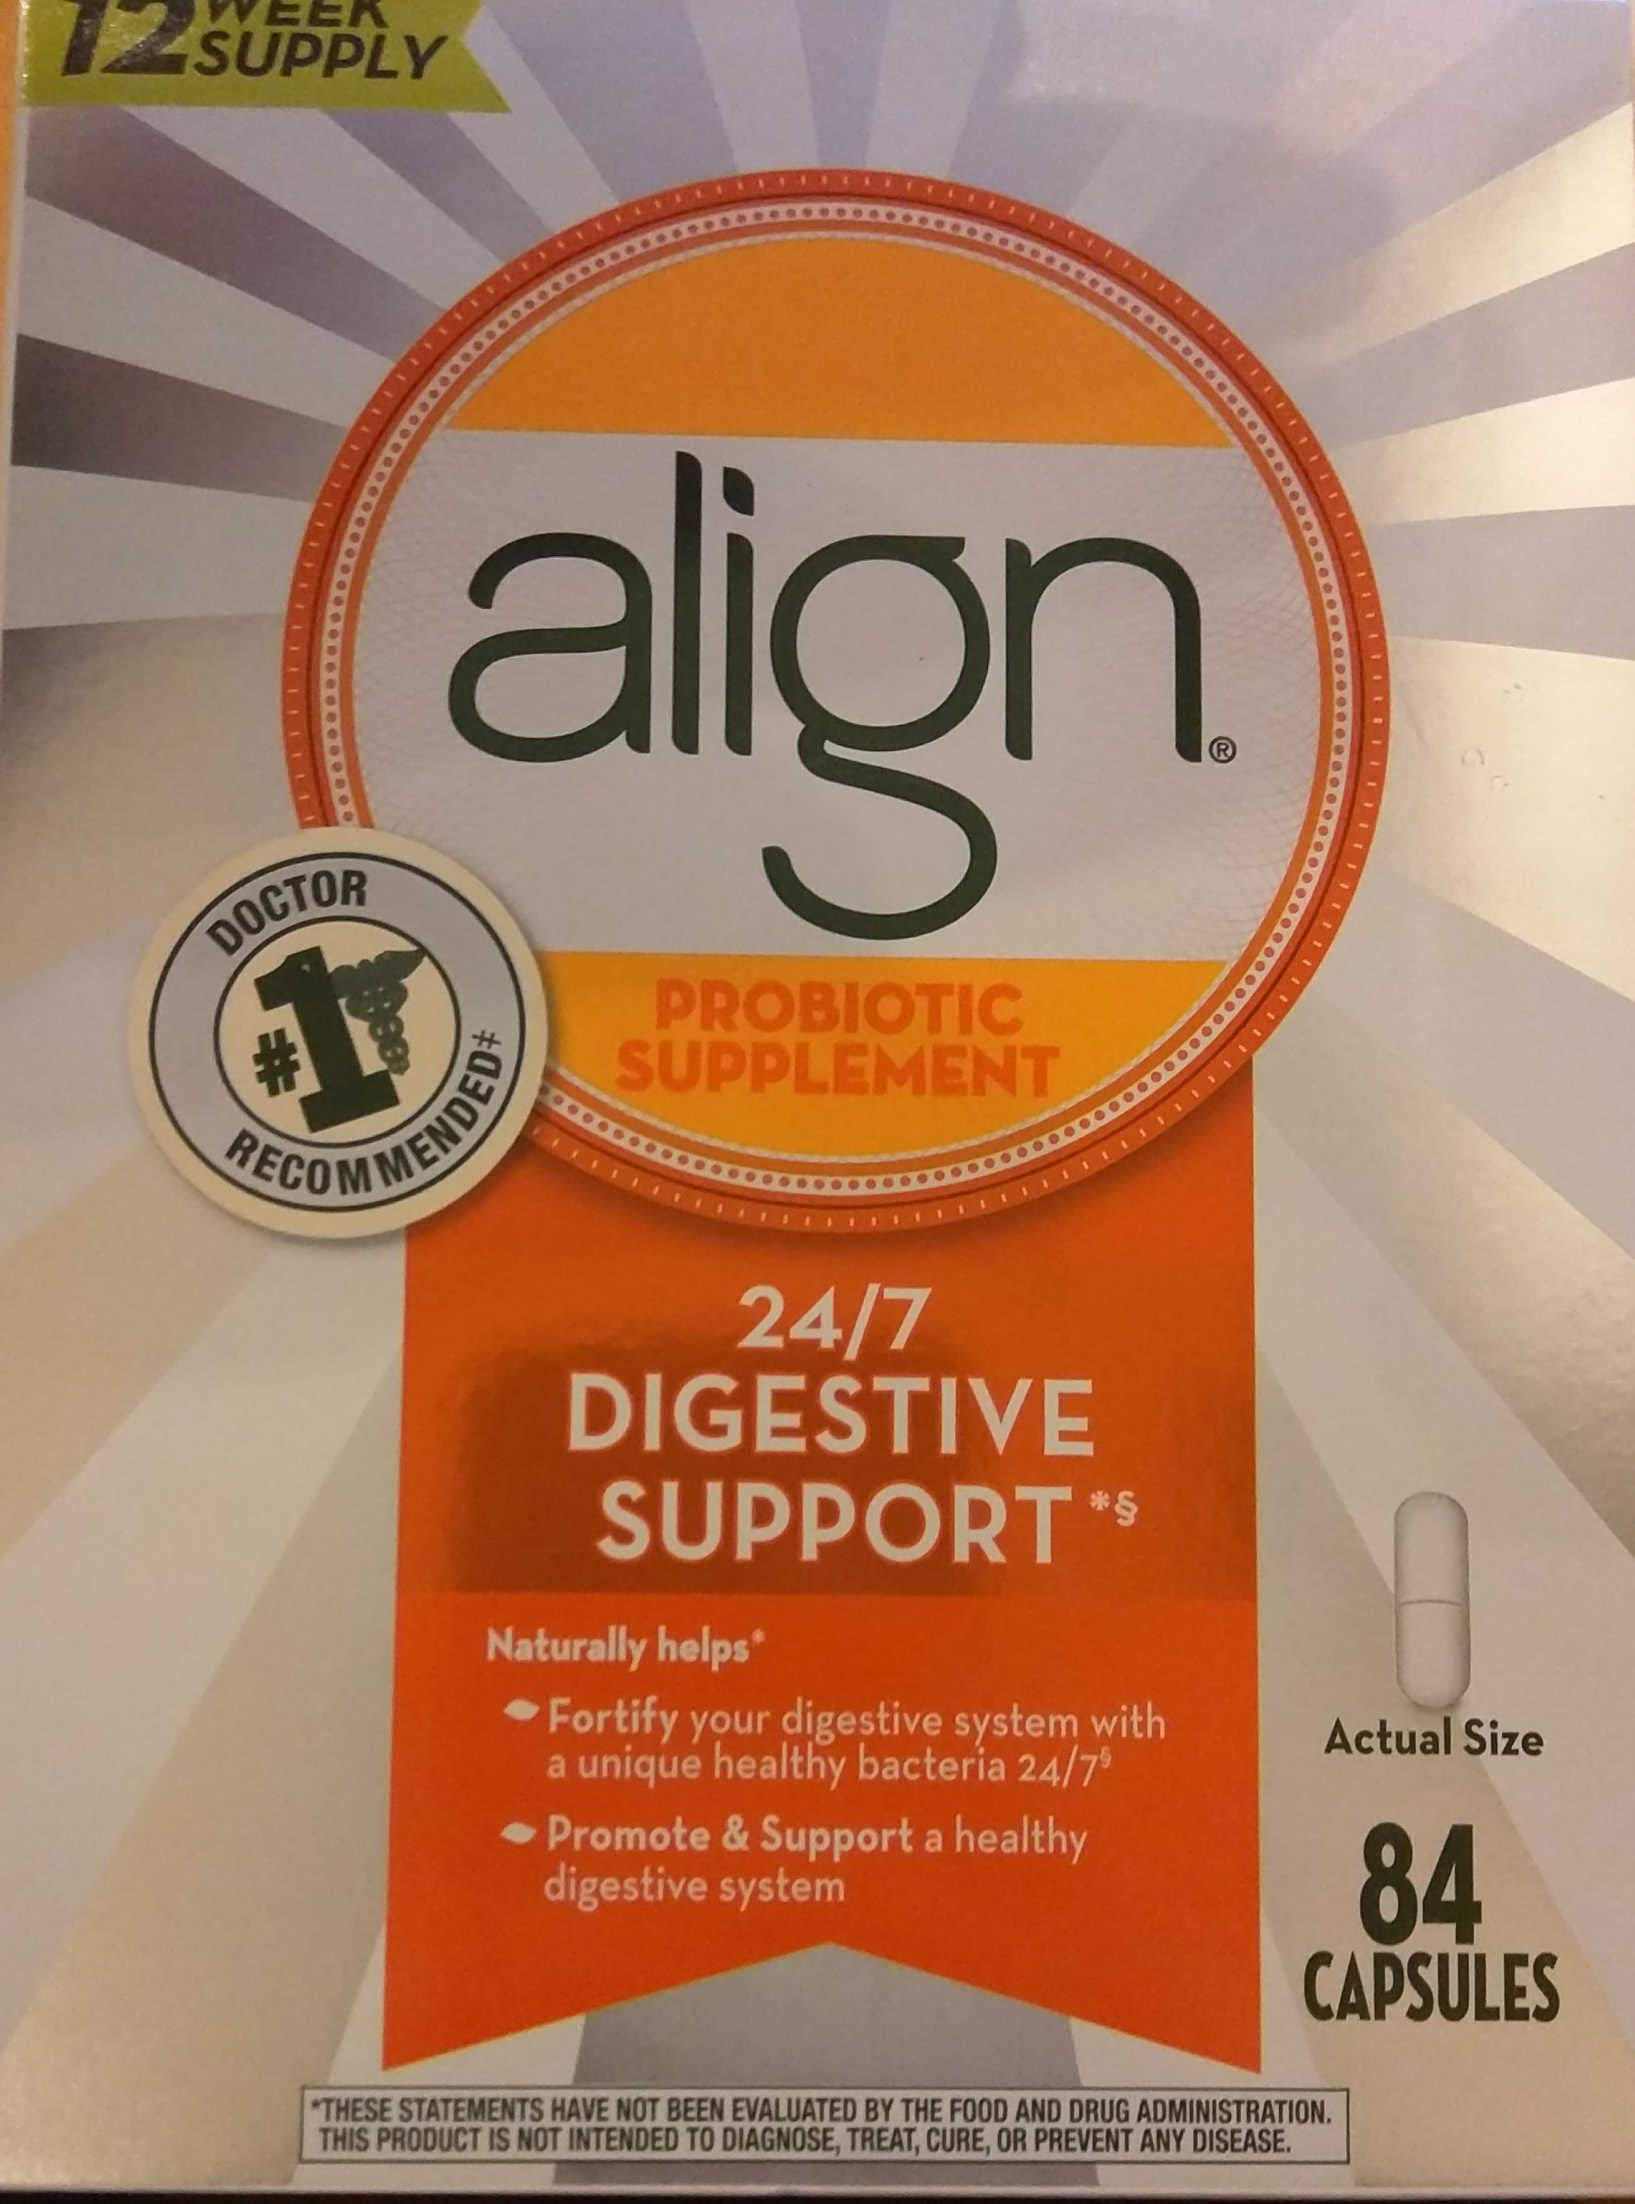 Align Daily Probiotic Supplement Capsules, 84 Count by Align (Image #1)